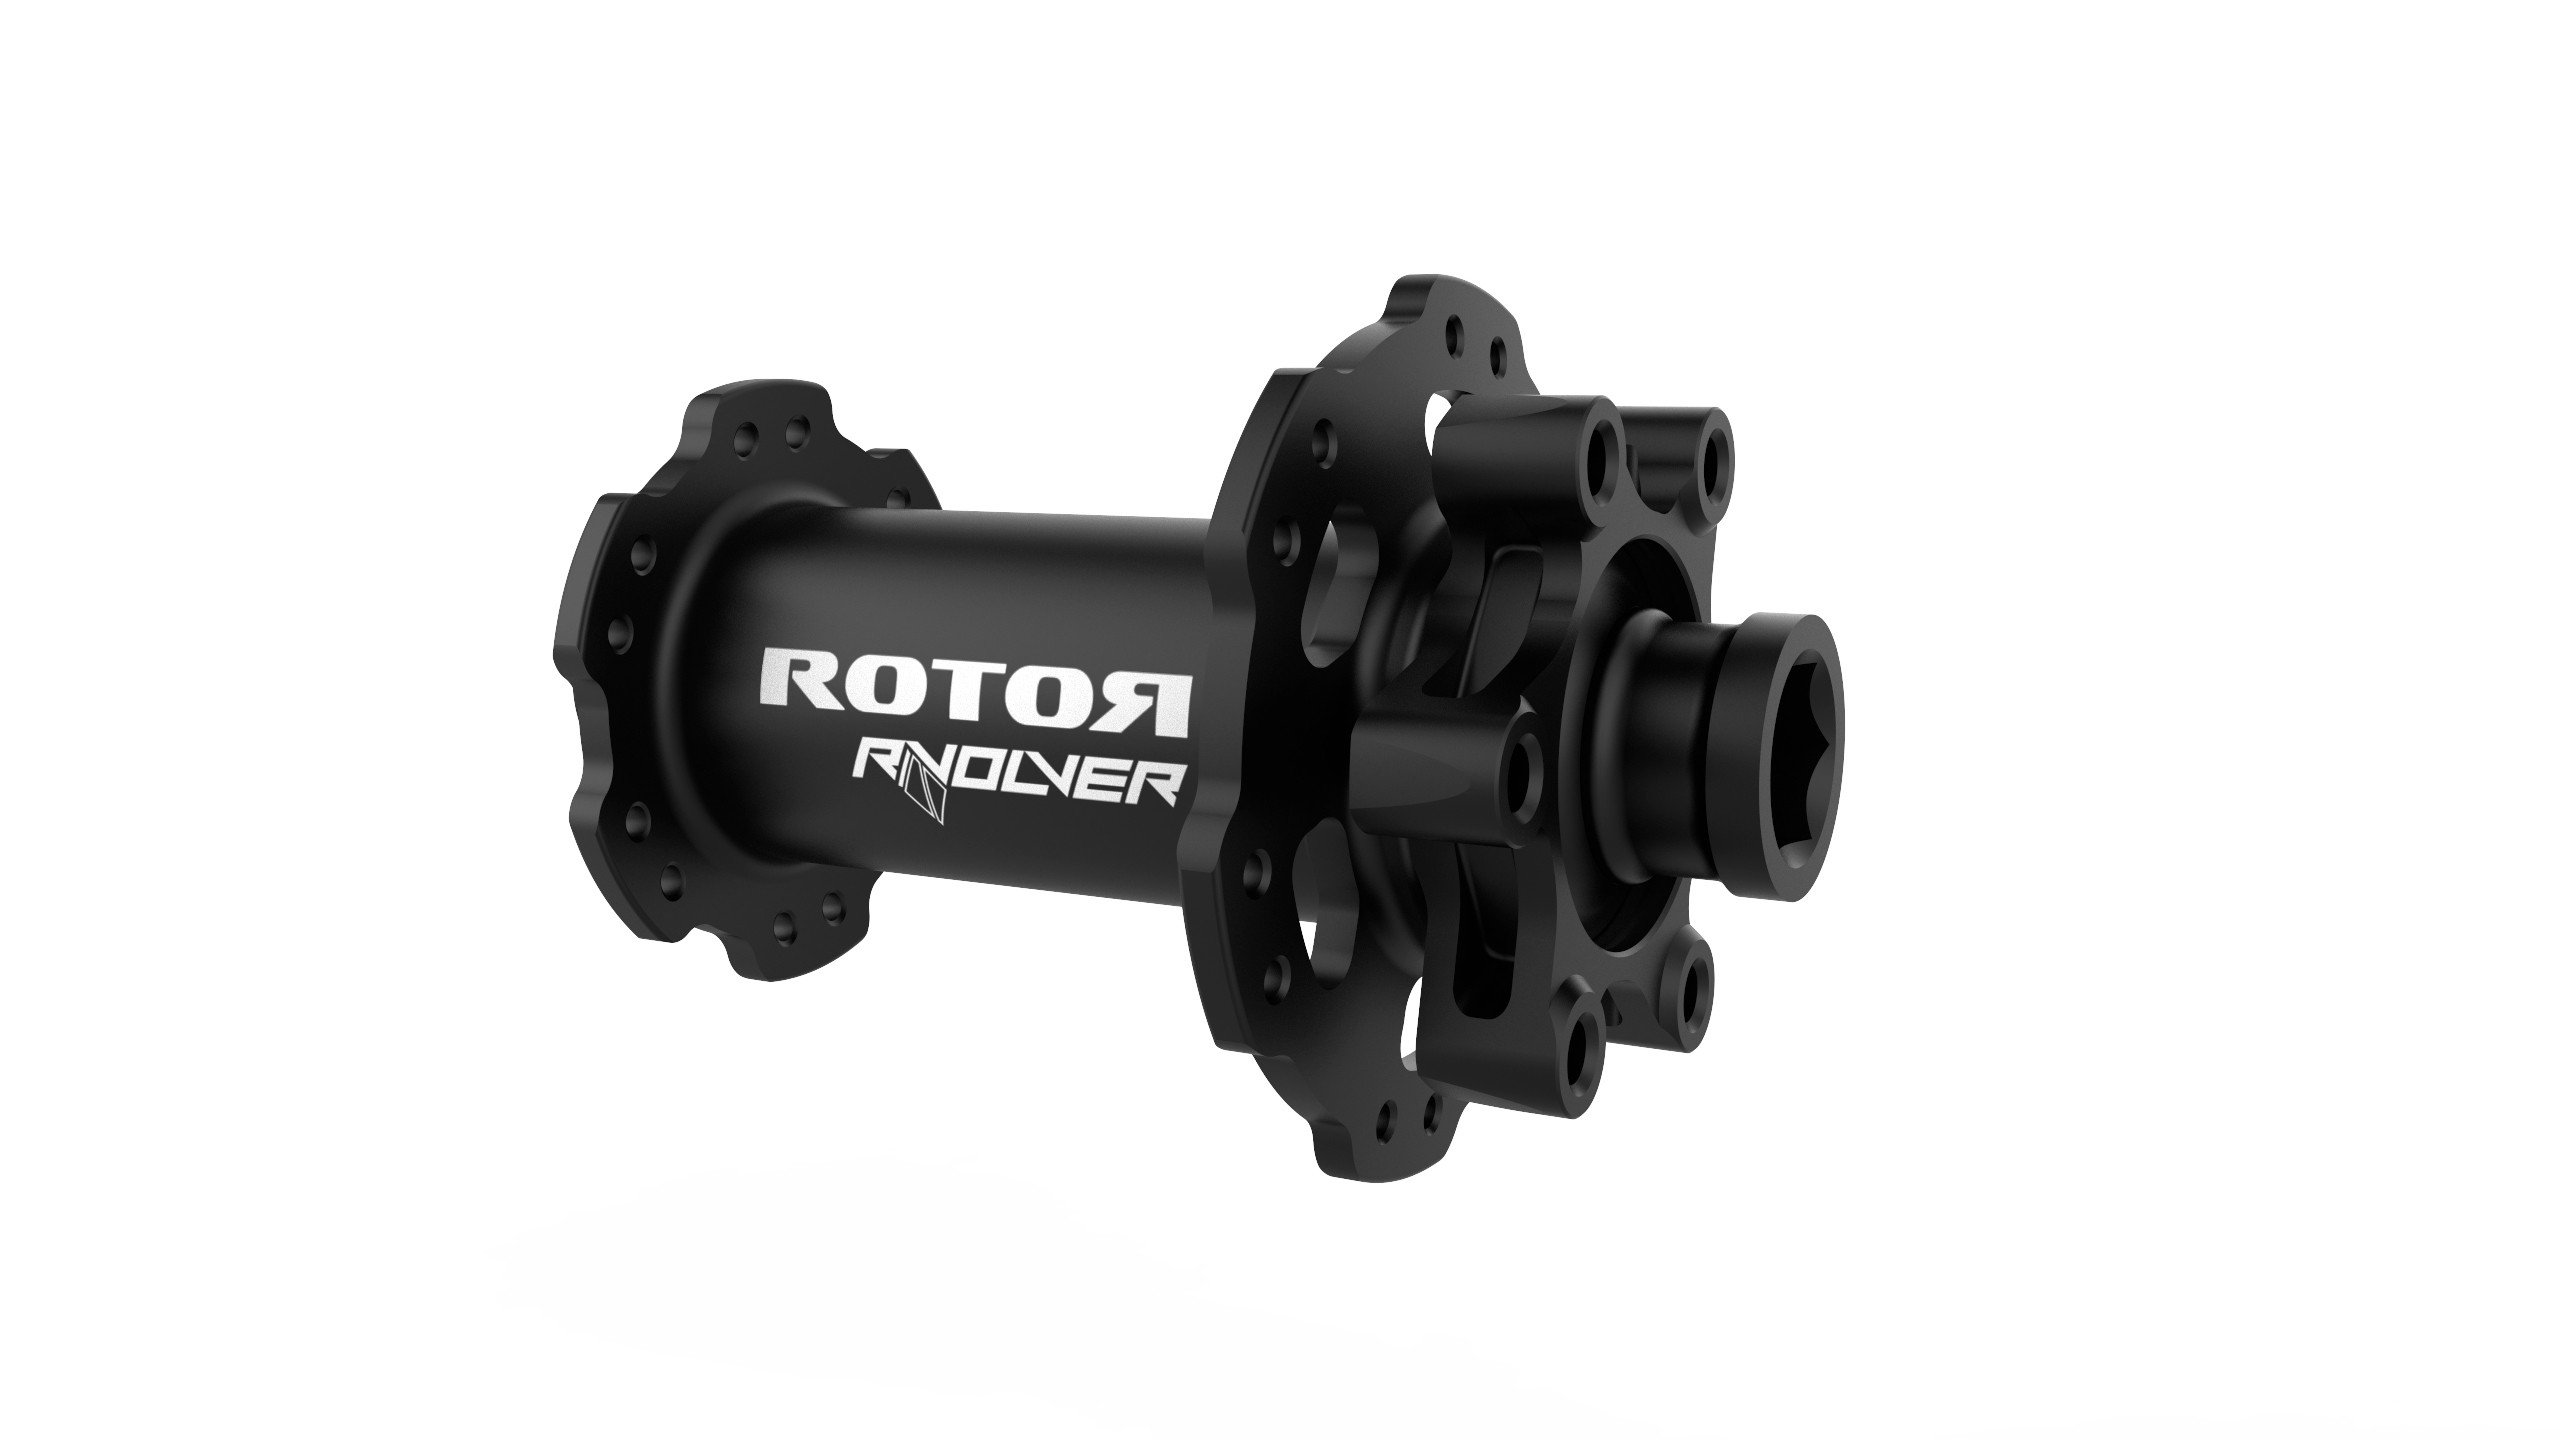 The RVOLVER road hub is available in disc (pictured) and rim brake versions